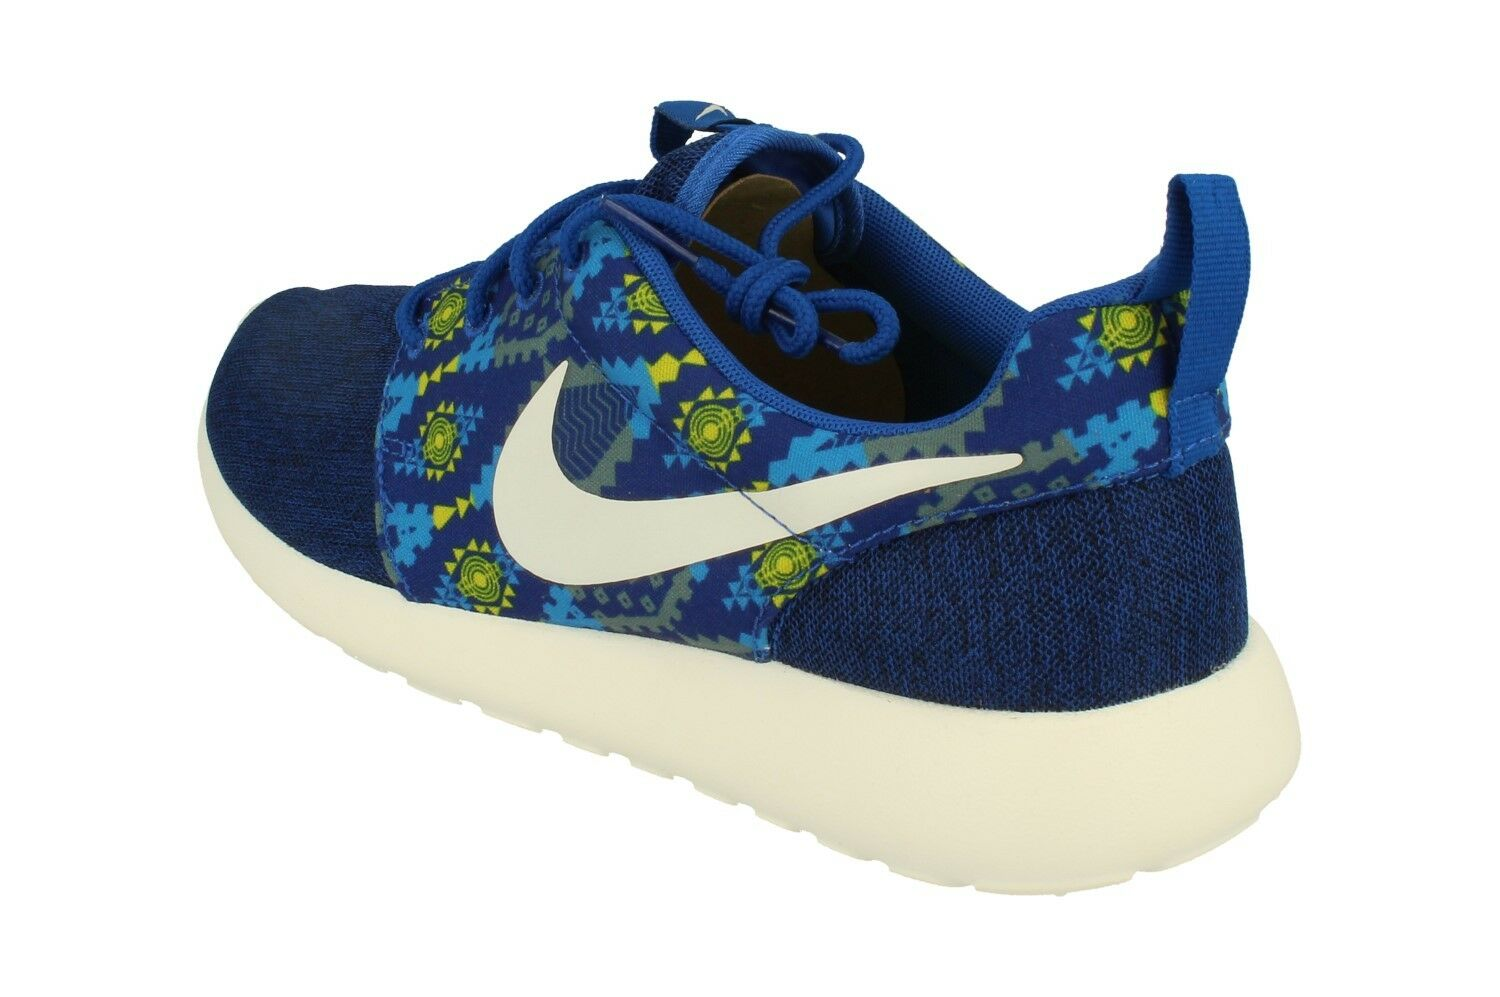 Nike Roshe One Print Mens Trainers 655206 655206 655206 Sneakers Shoes 410 8ec635